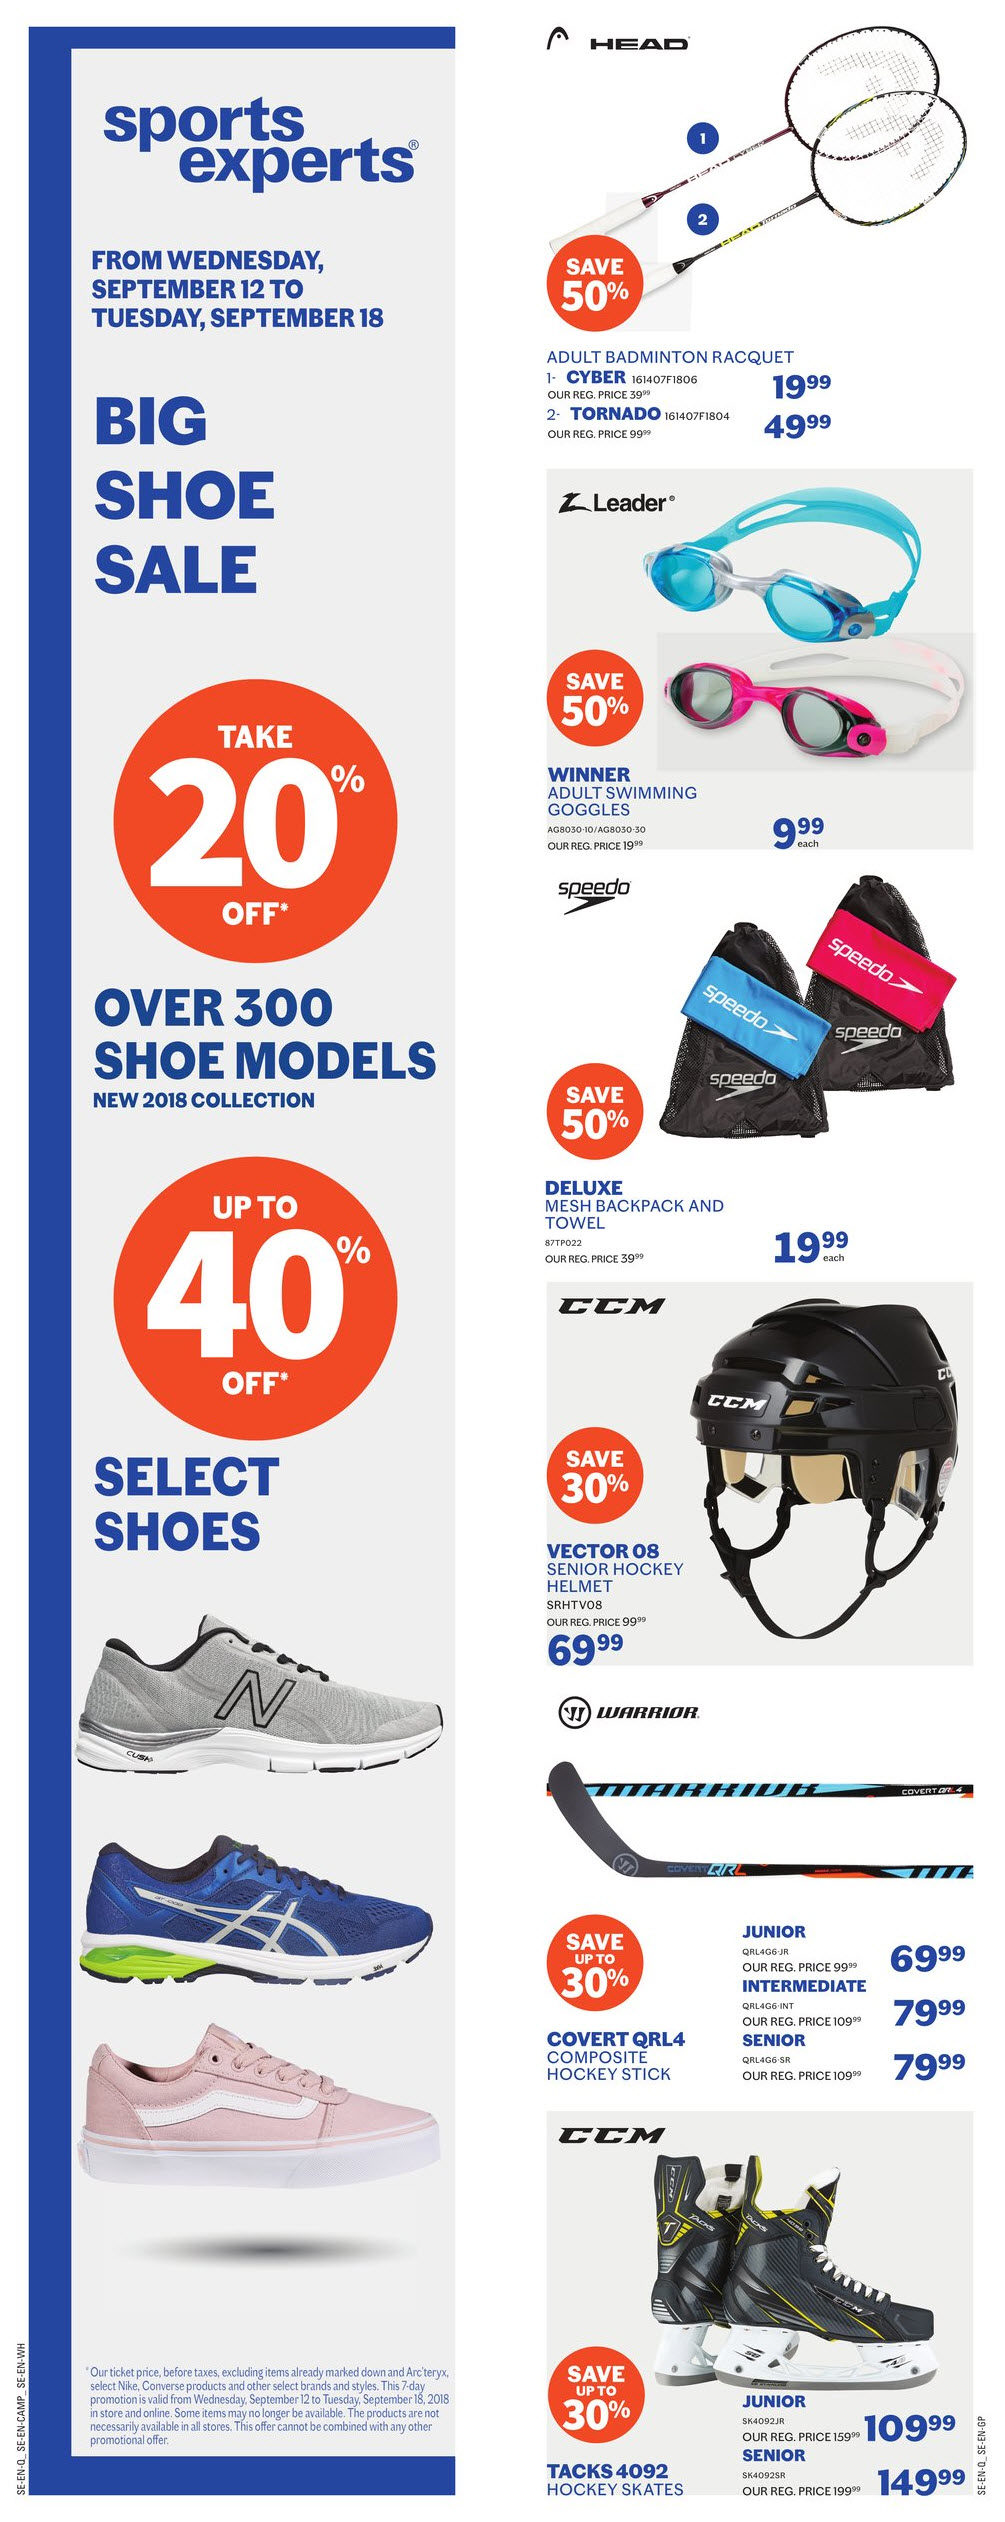 a76dd9d88f Sports Experts Weekly Flyer - 2 Weeks of Savings - Big Shoe Sale - Sep 12 –  25 - RedFlagDeals.com